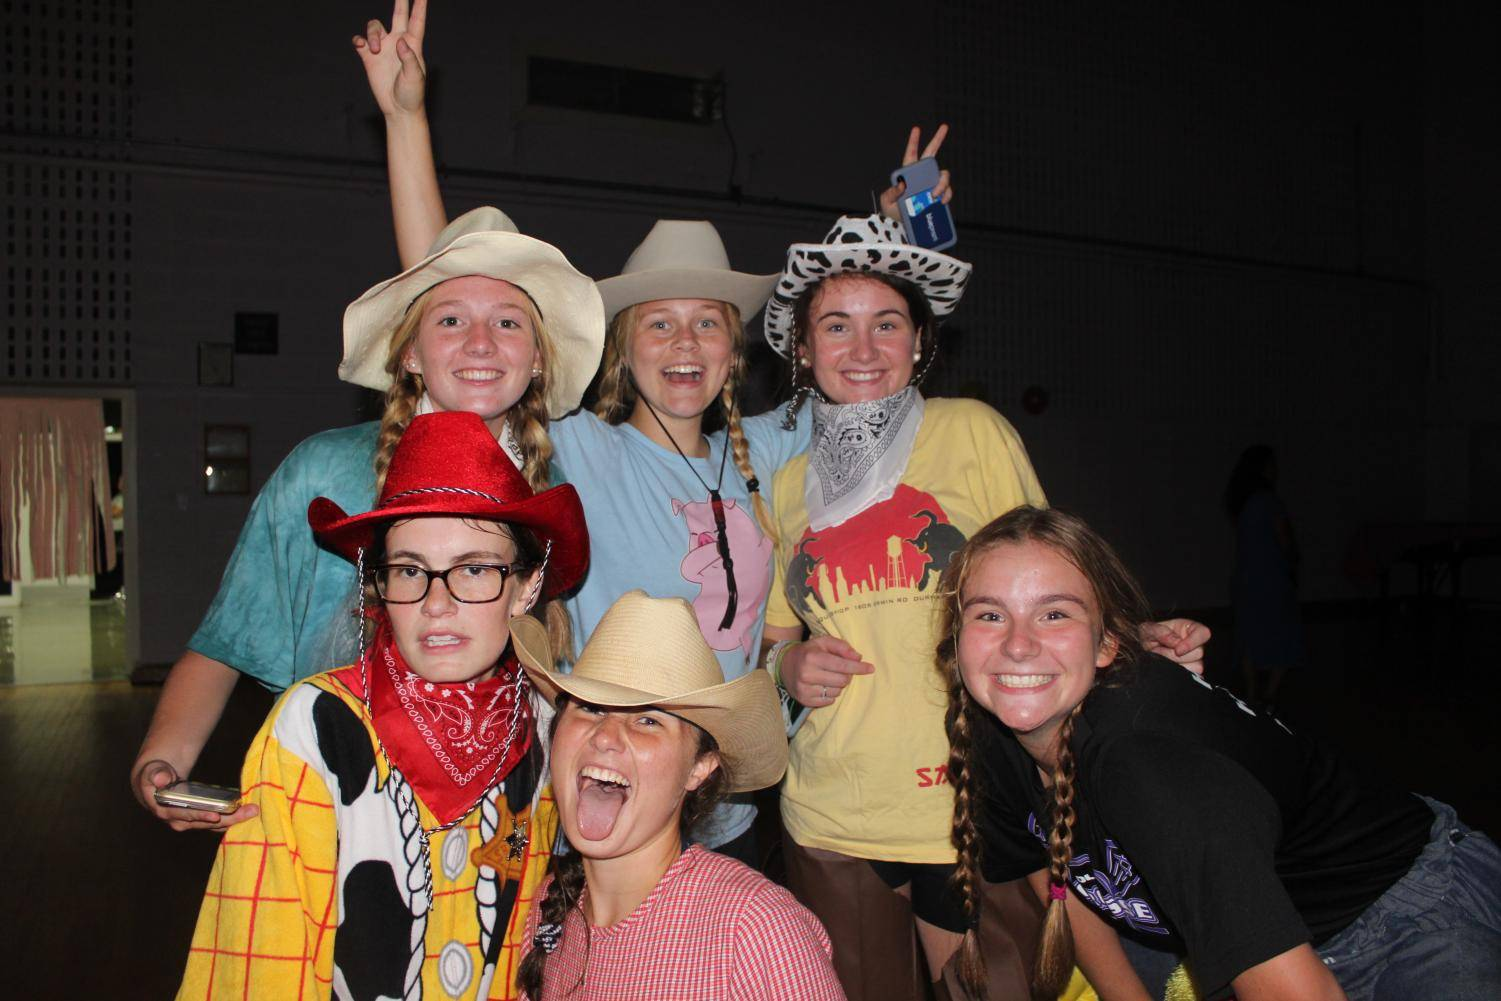 A great looking group of cowgirls.